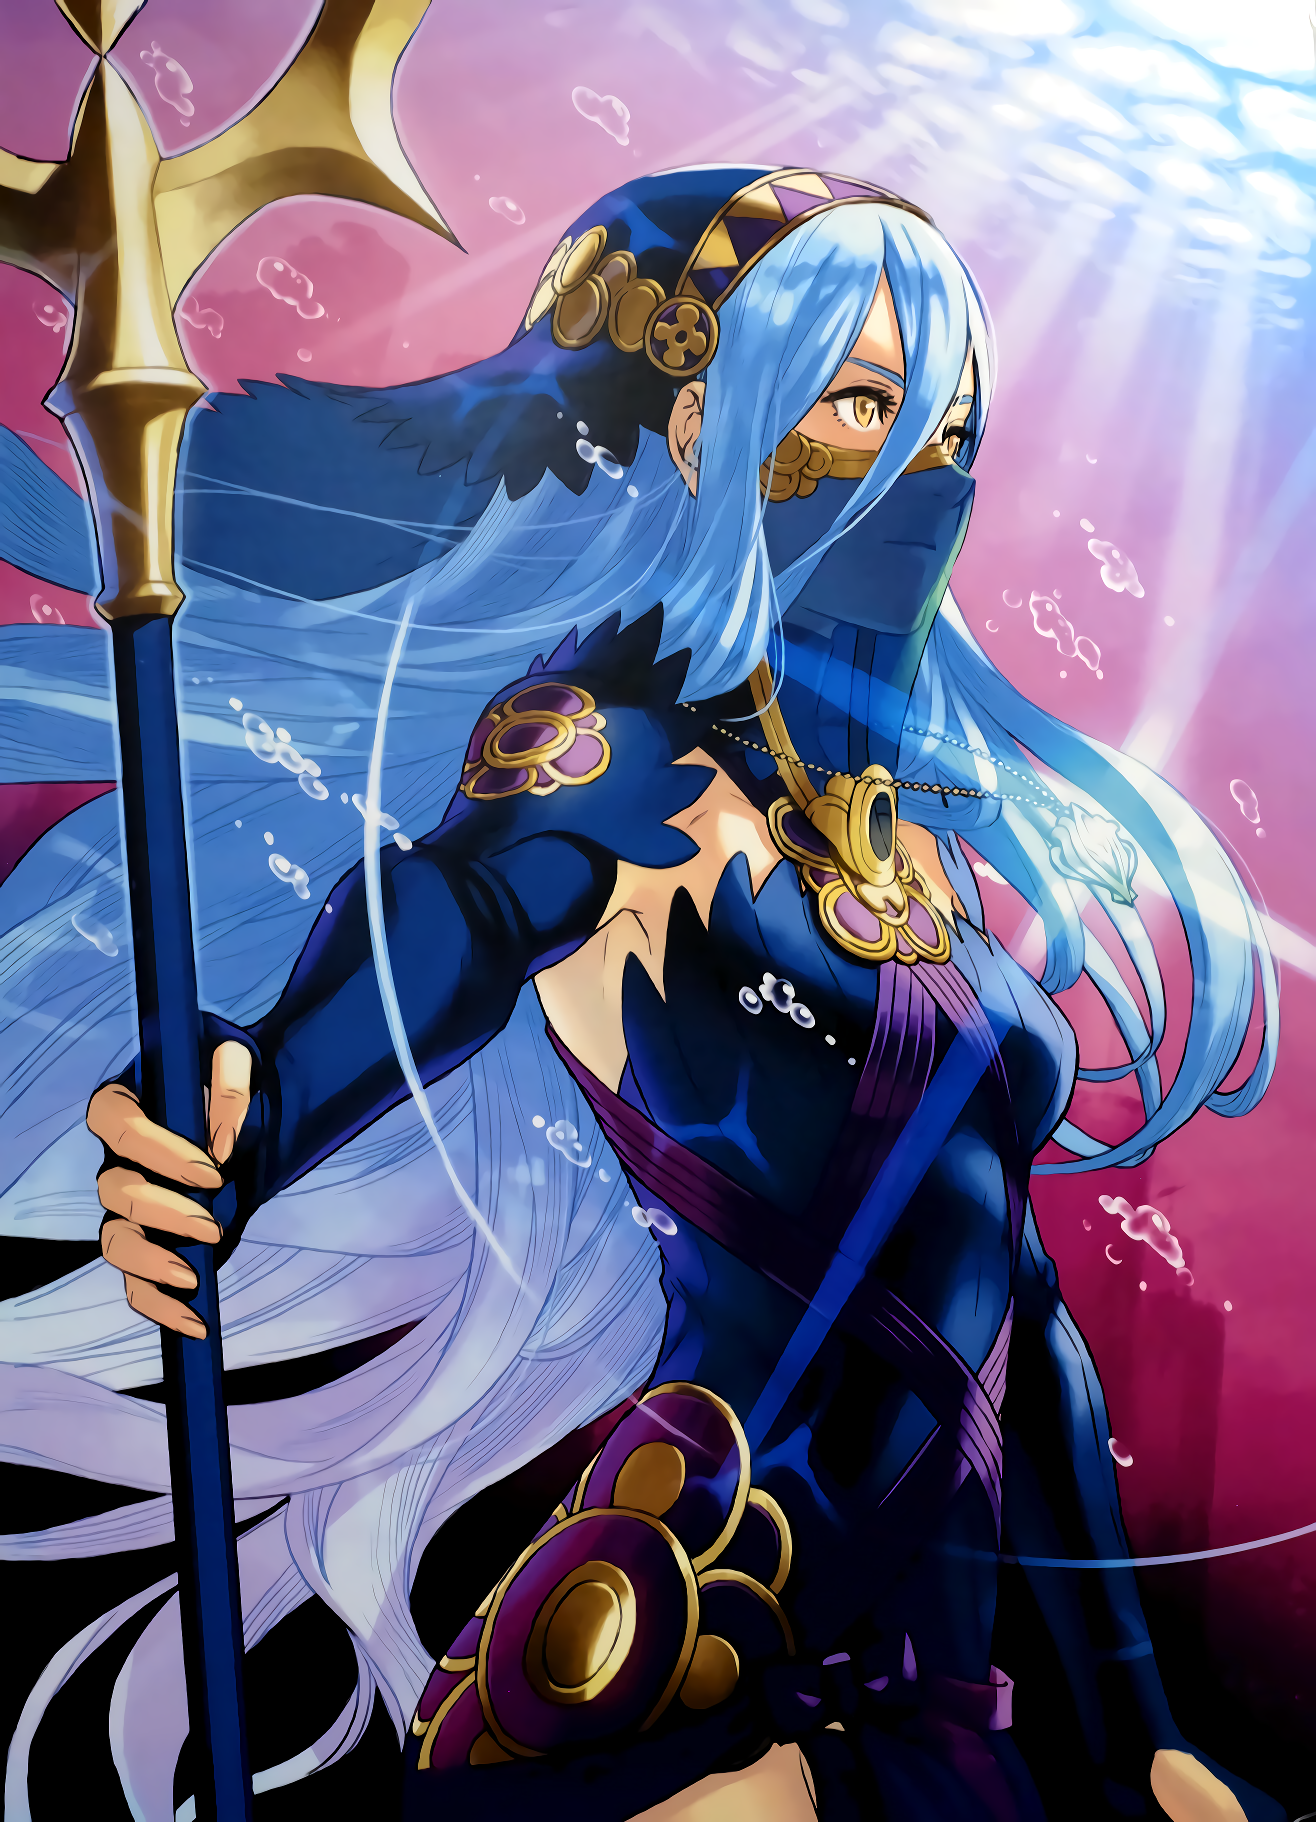 azura and camilla wallpaper - photo #5